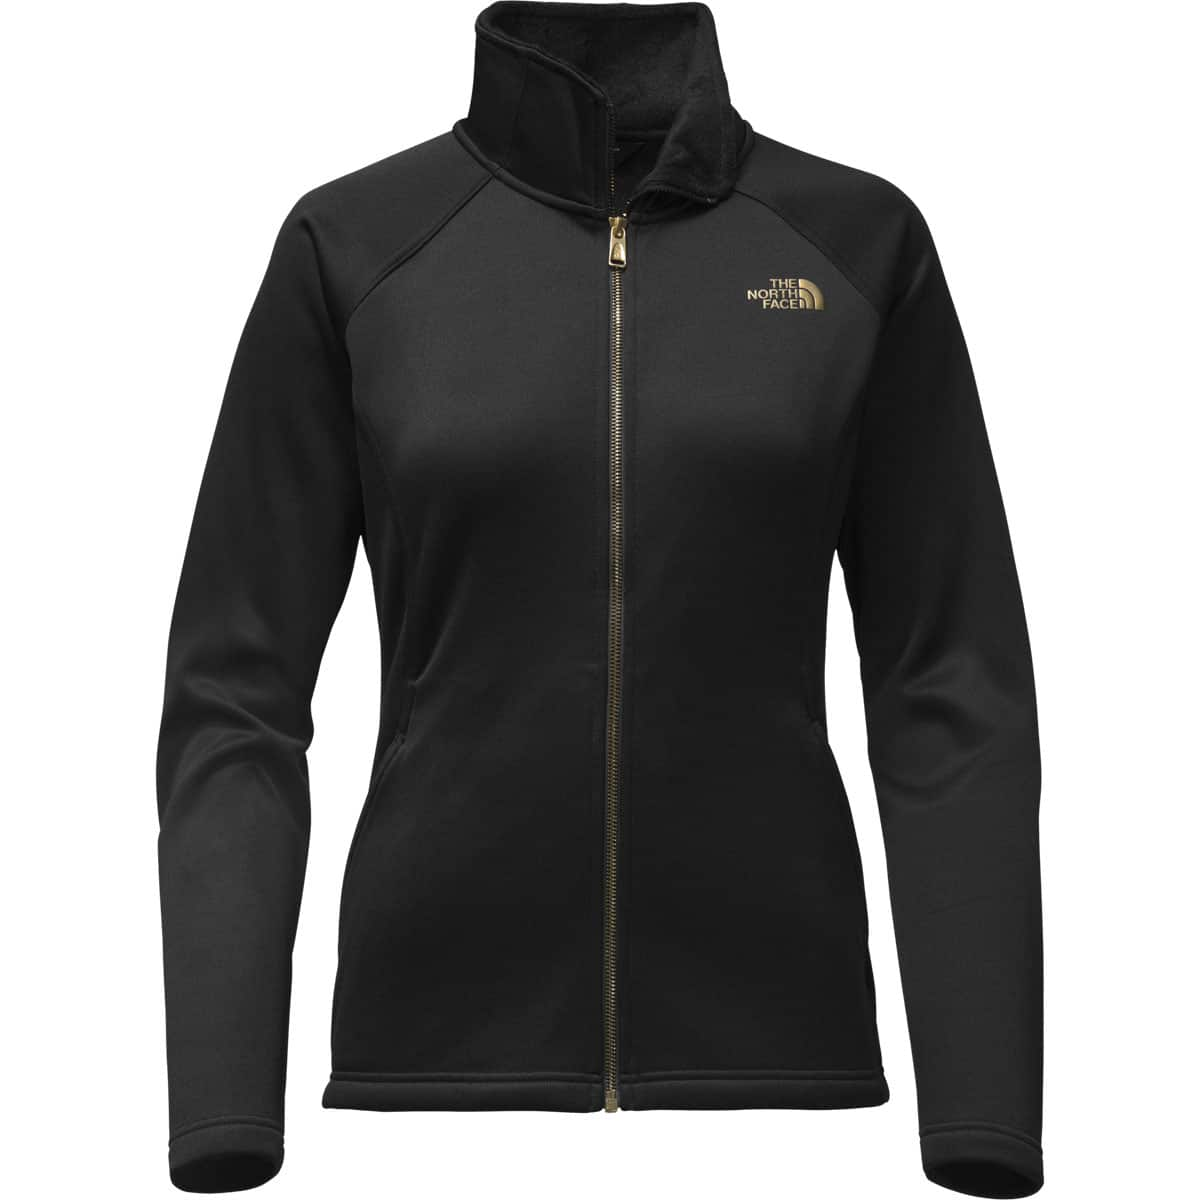 The North Face:  Agave Jacket for Women $55, Apex Canyonwall Jacket for Men $65, Oso Hoodie for Women $75 with free shipping